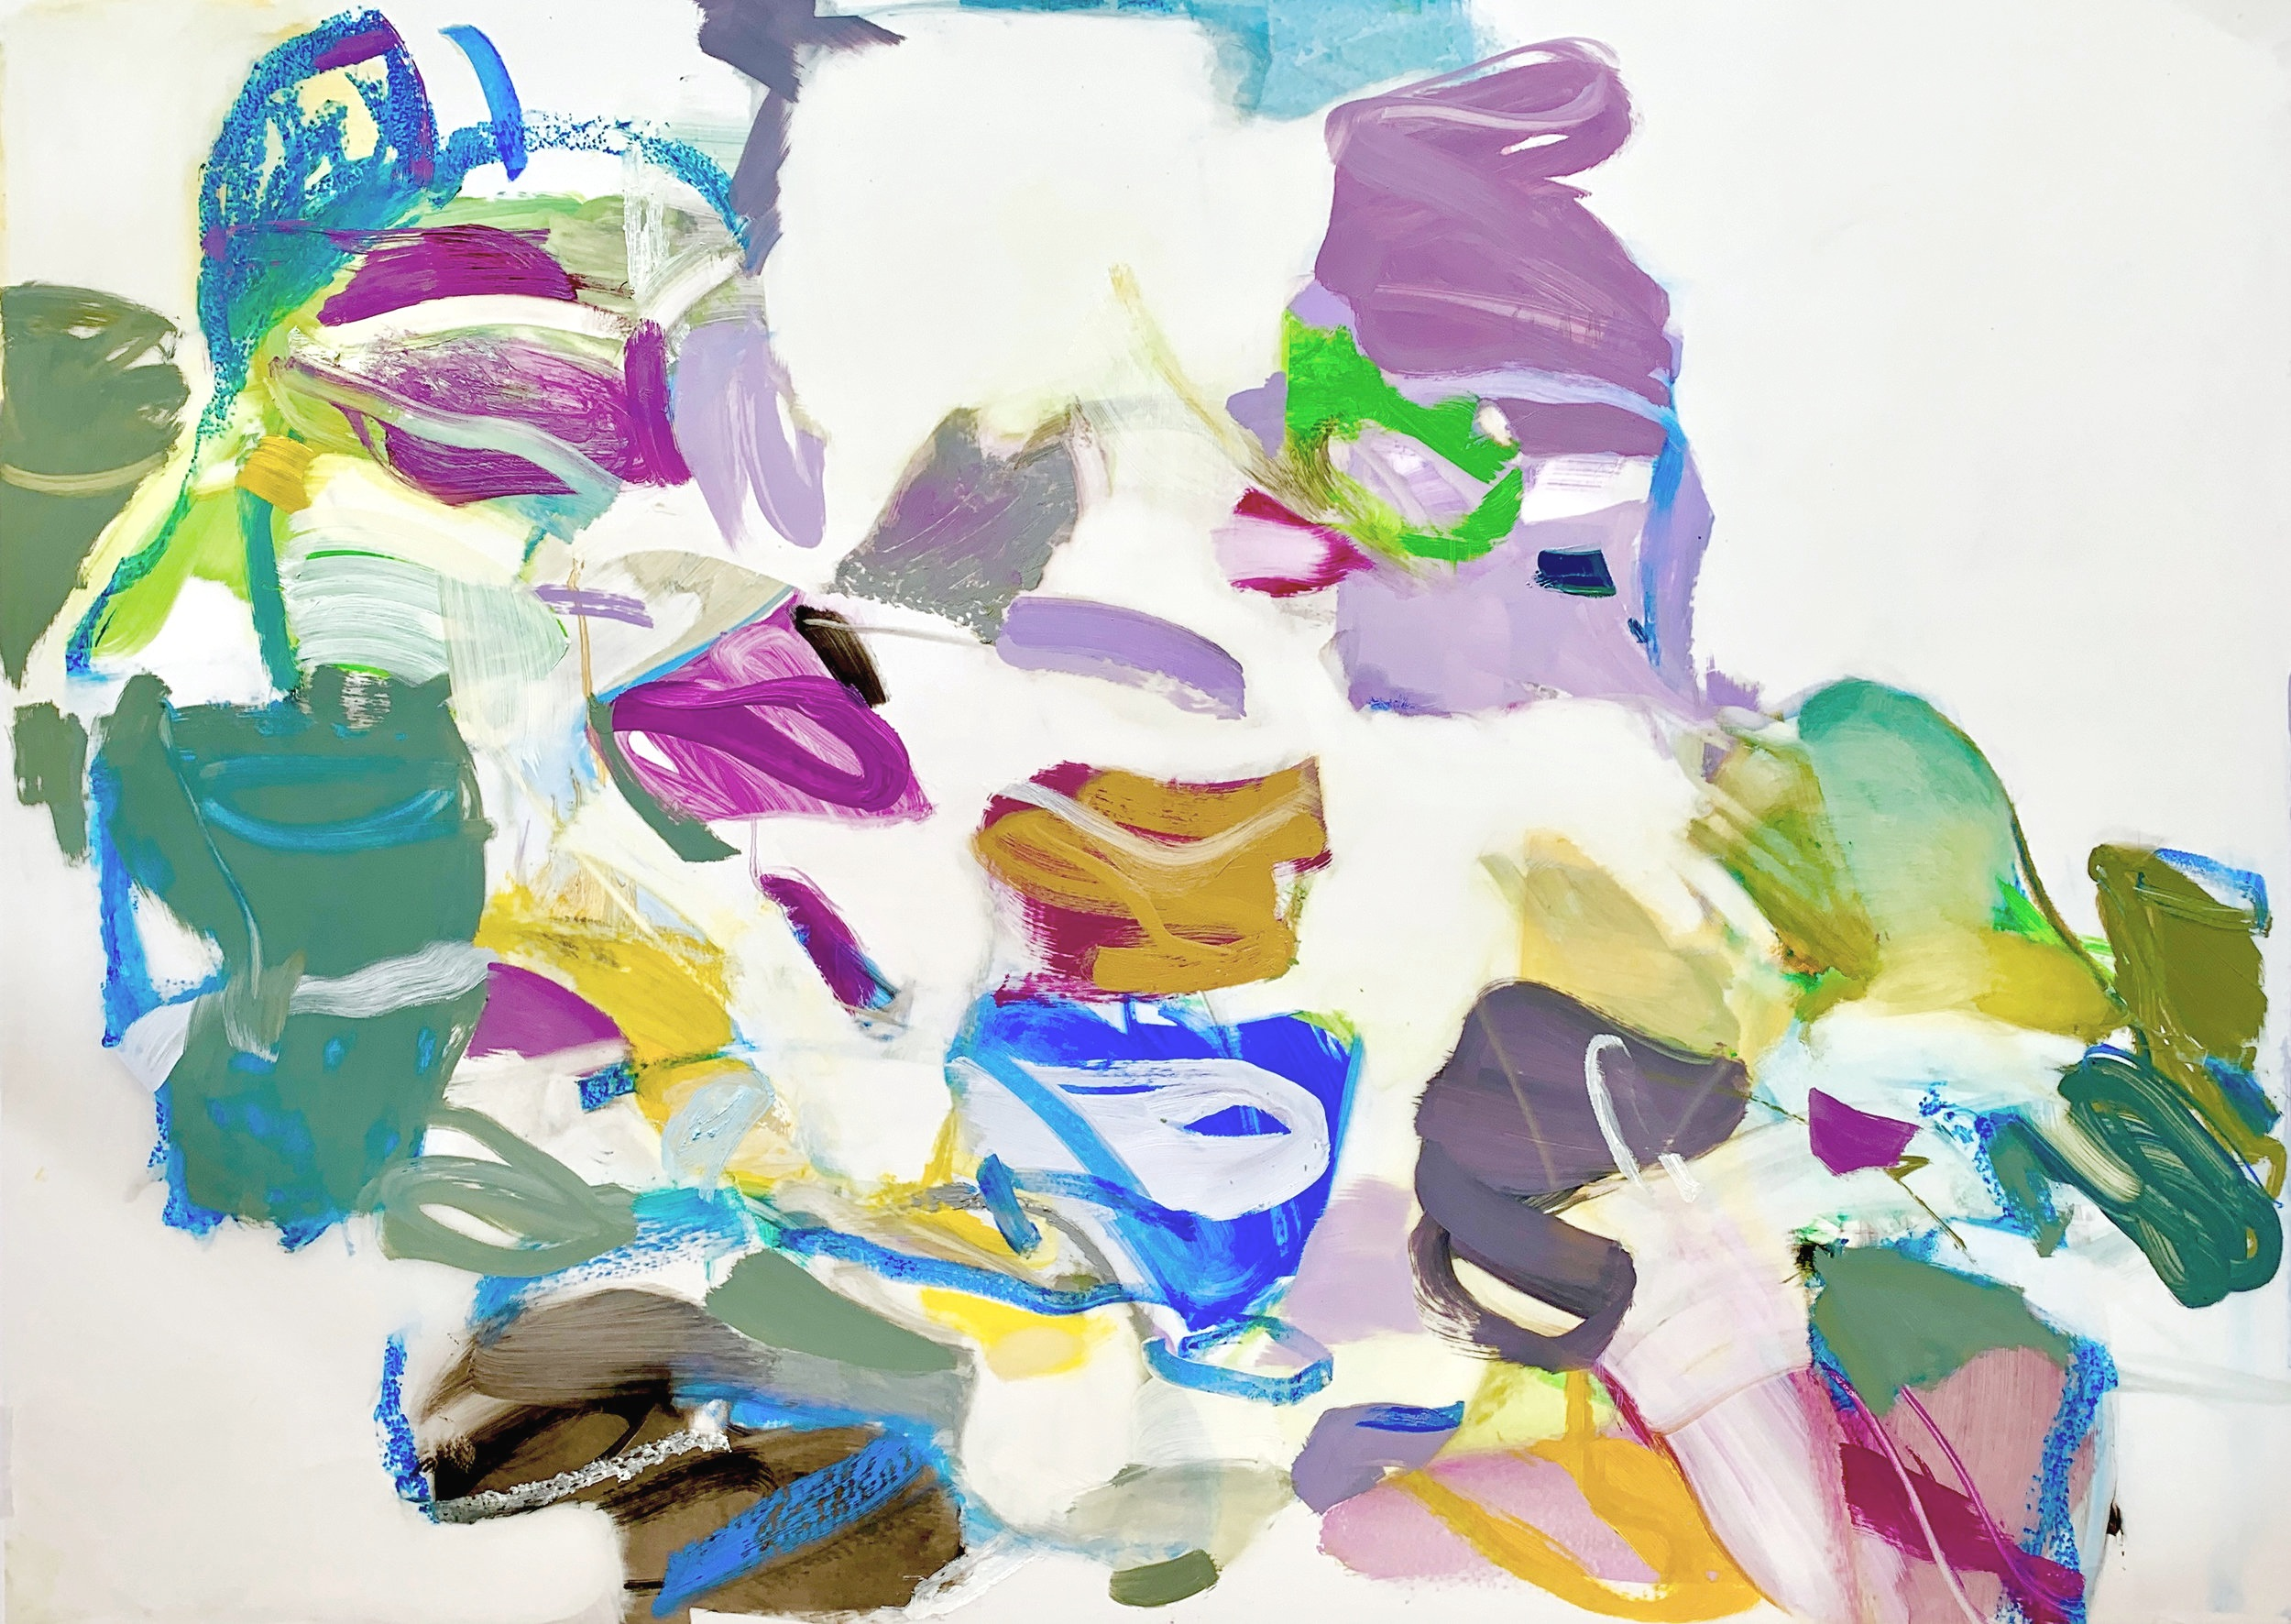 Abstract Vernacular  2019 40 ½ x 29 inches Oil on Mylar